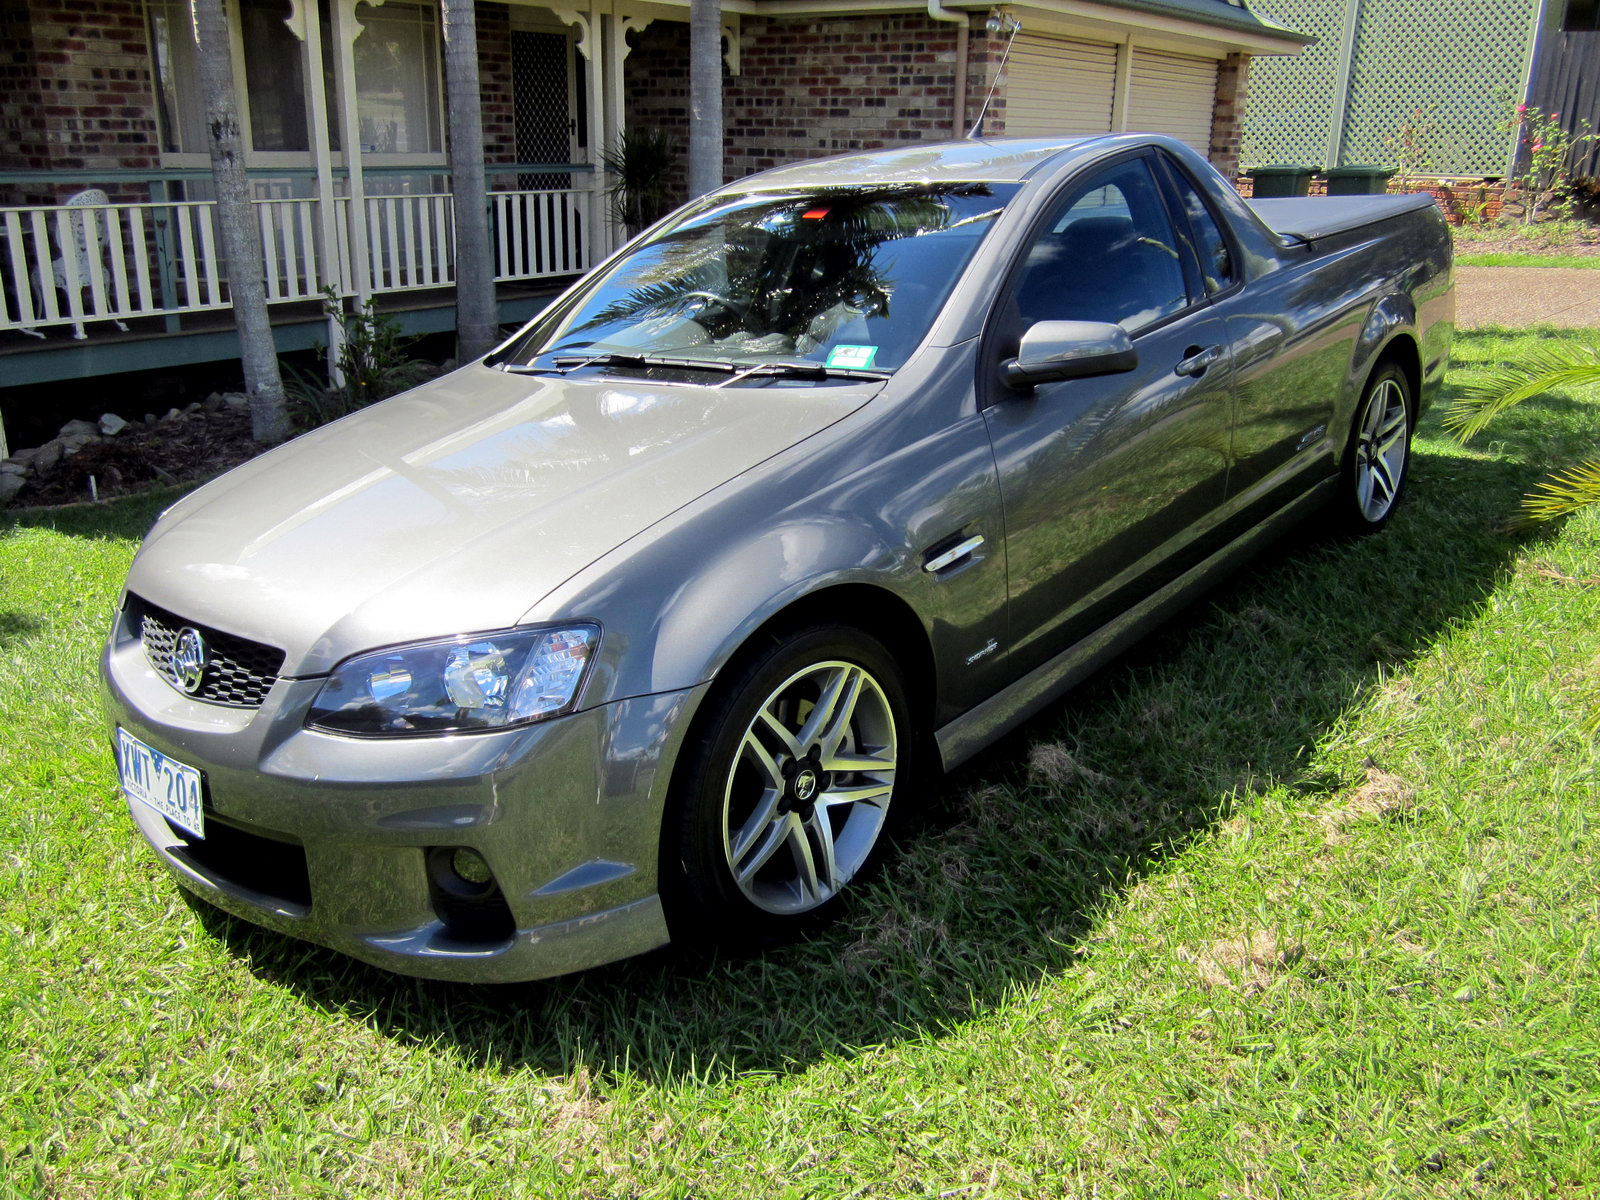 2011 Holden Ute Series II SS 4 Holden VE Series II SS Version with Revised Technical Specification